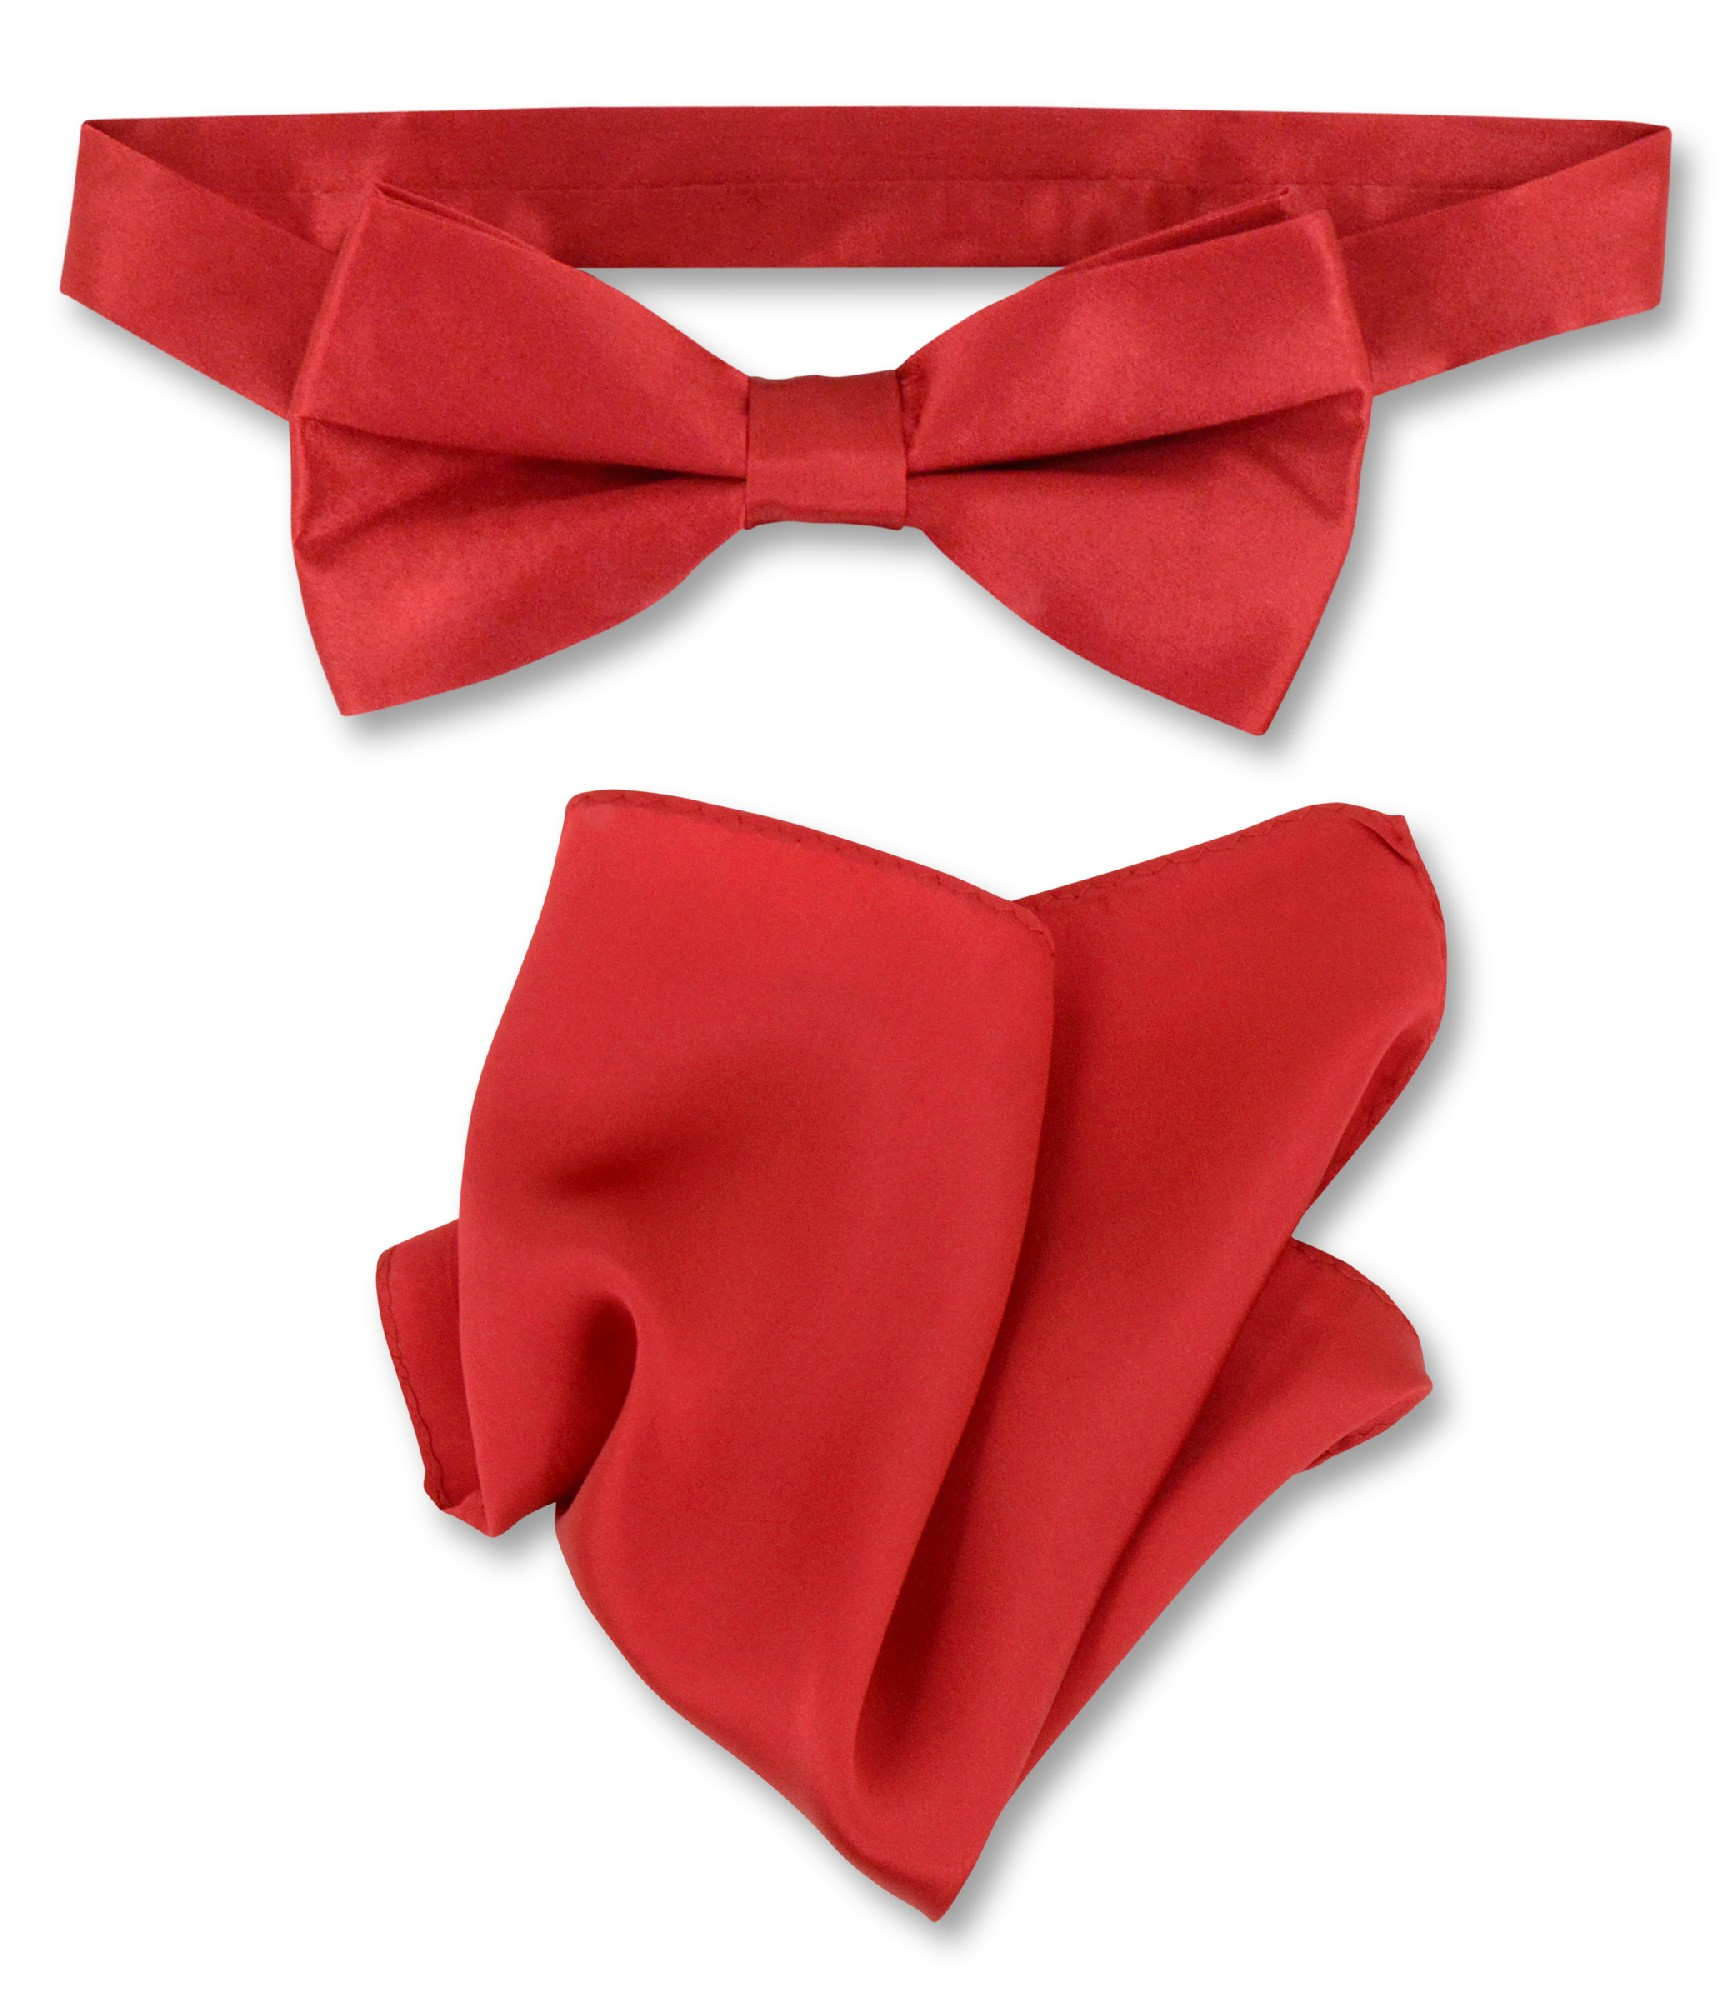 Rose Red Bow Tie And Handkerchief Set | Silk BowTie Hanky Set